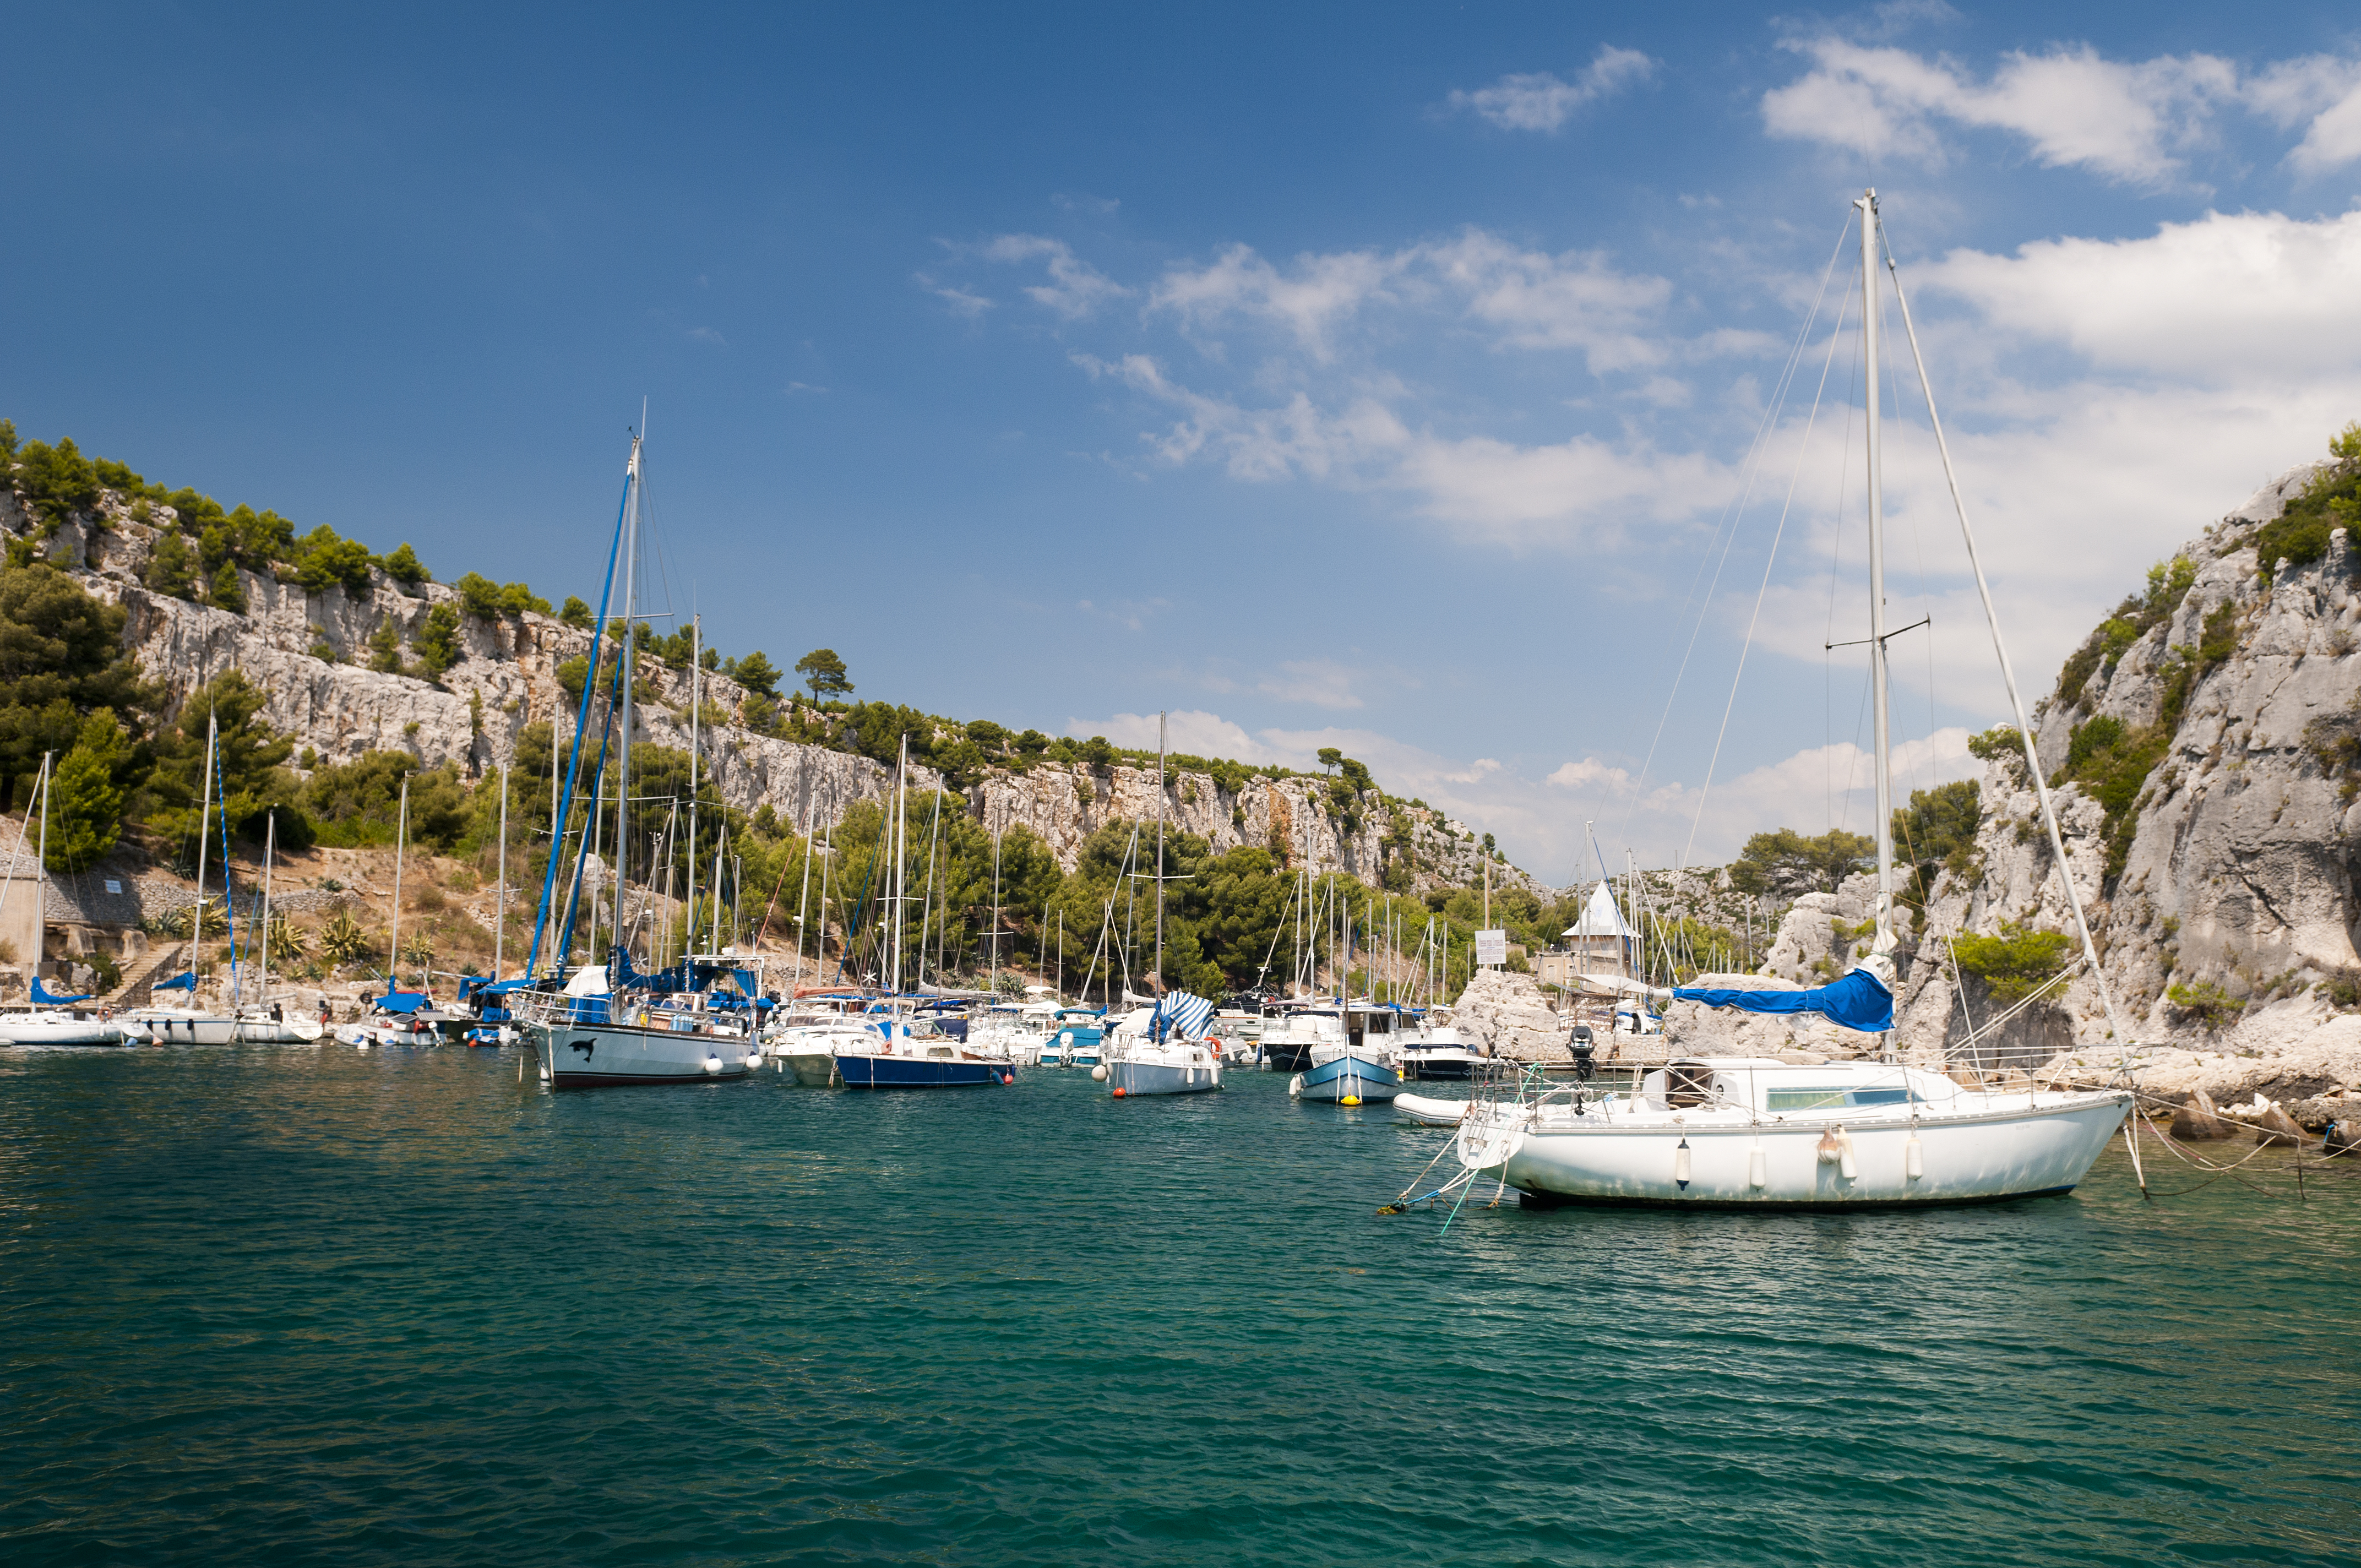 calanque_near_cassis_provence_france_6052442545